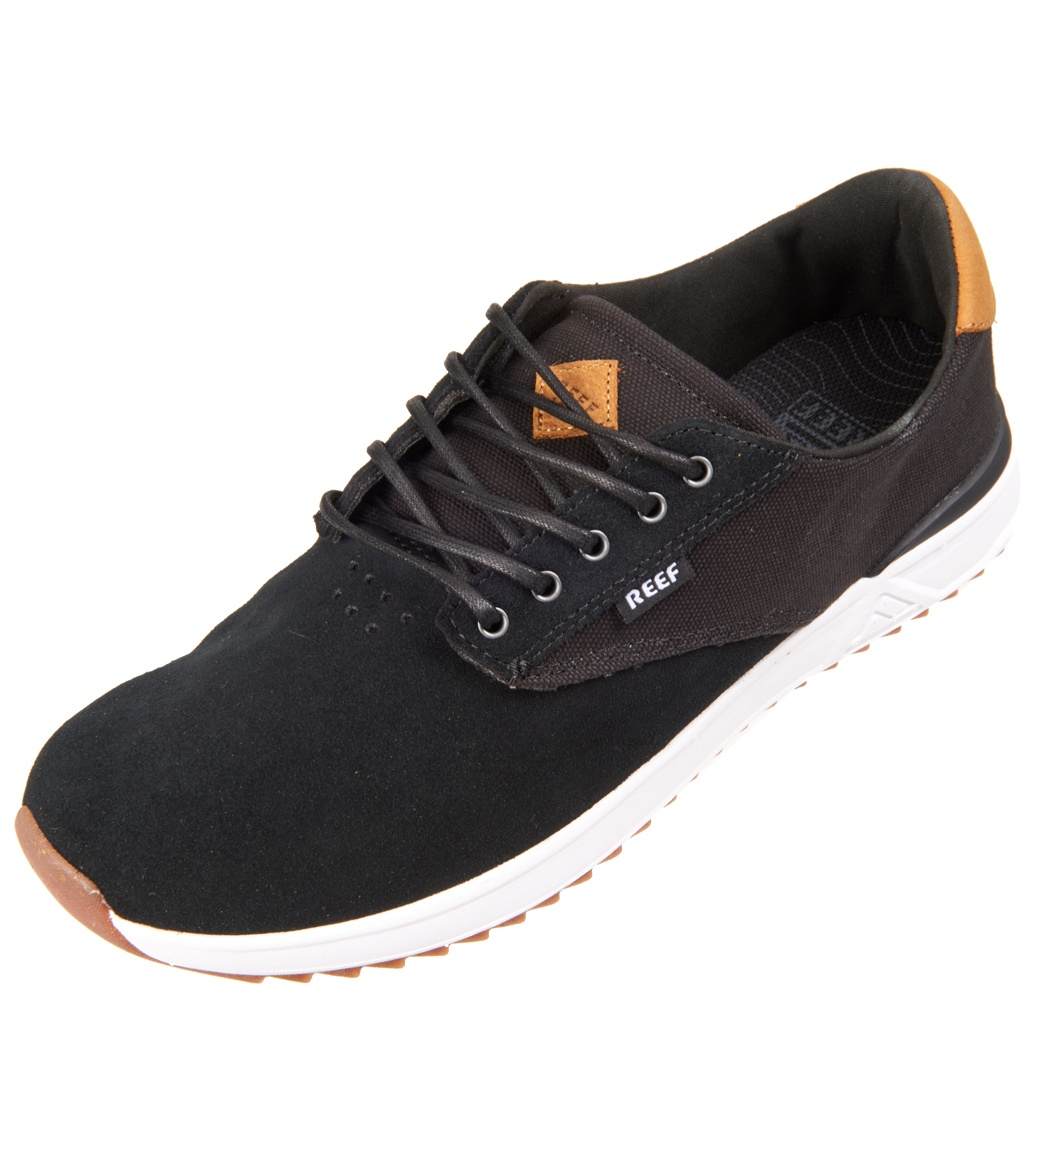 1ca349184f Reef Men s Mission Shoe at SwimOutlet.com - Free Shipping